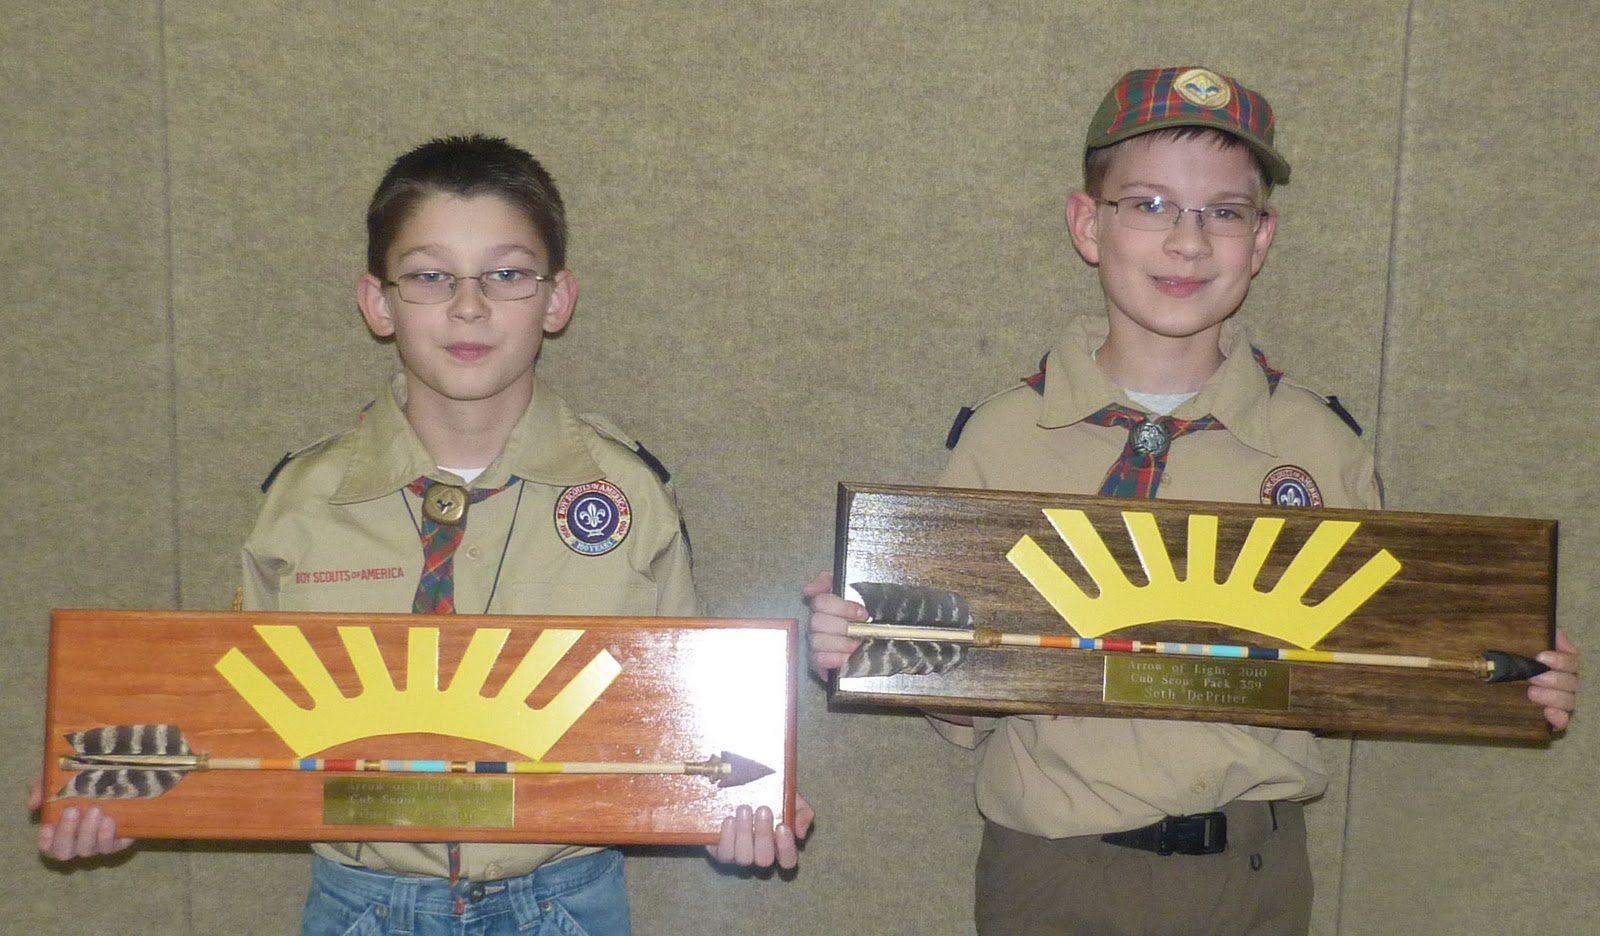 the plaques arrow pin of scout light plaque cub are from wood carved and painted